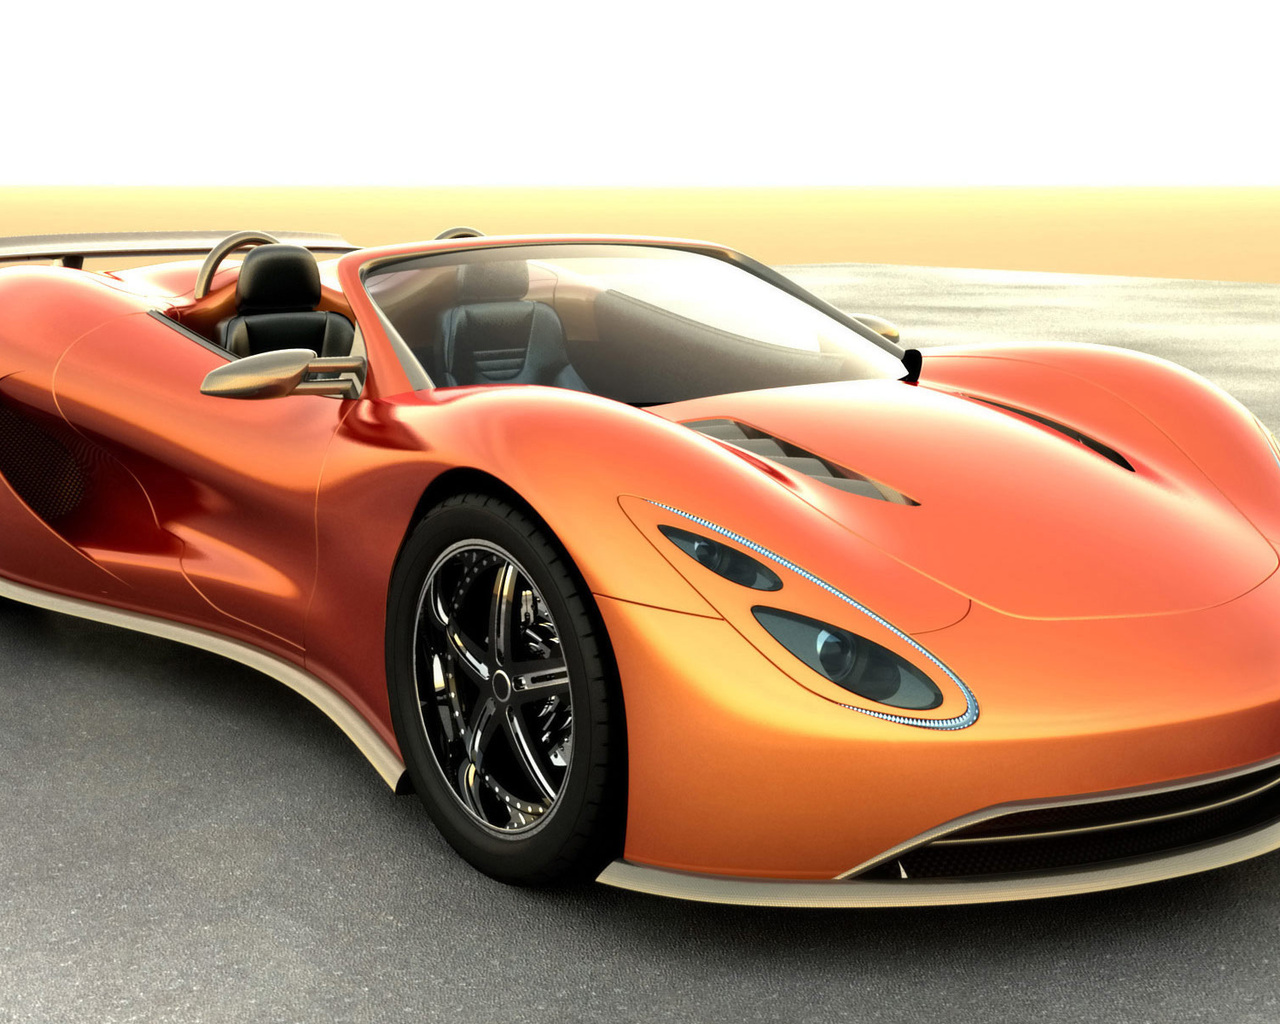 Orange Scorpion Sport Car